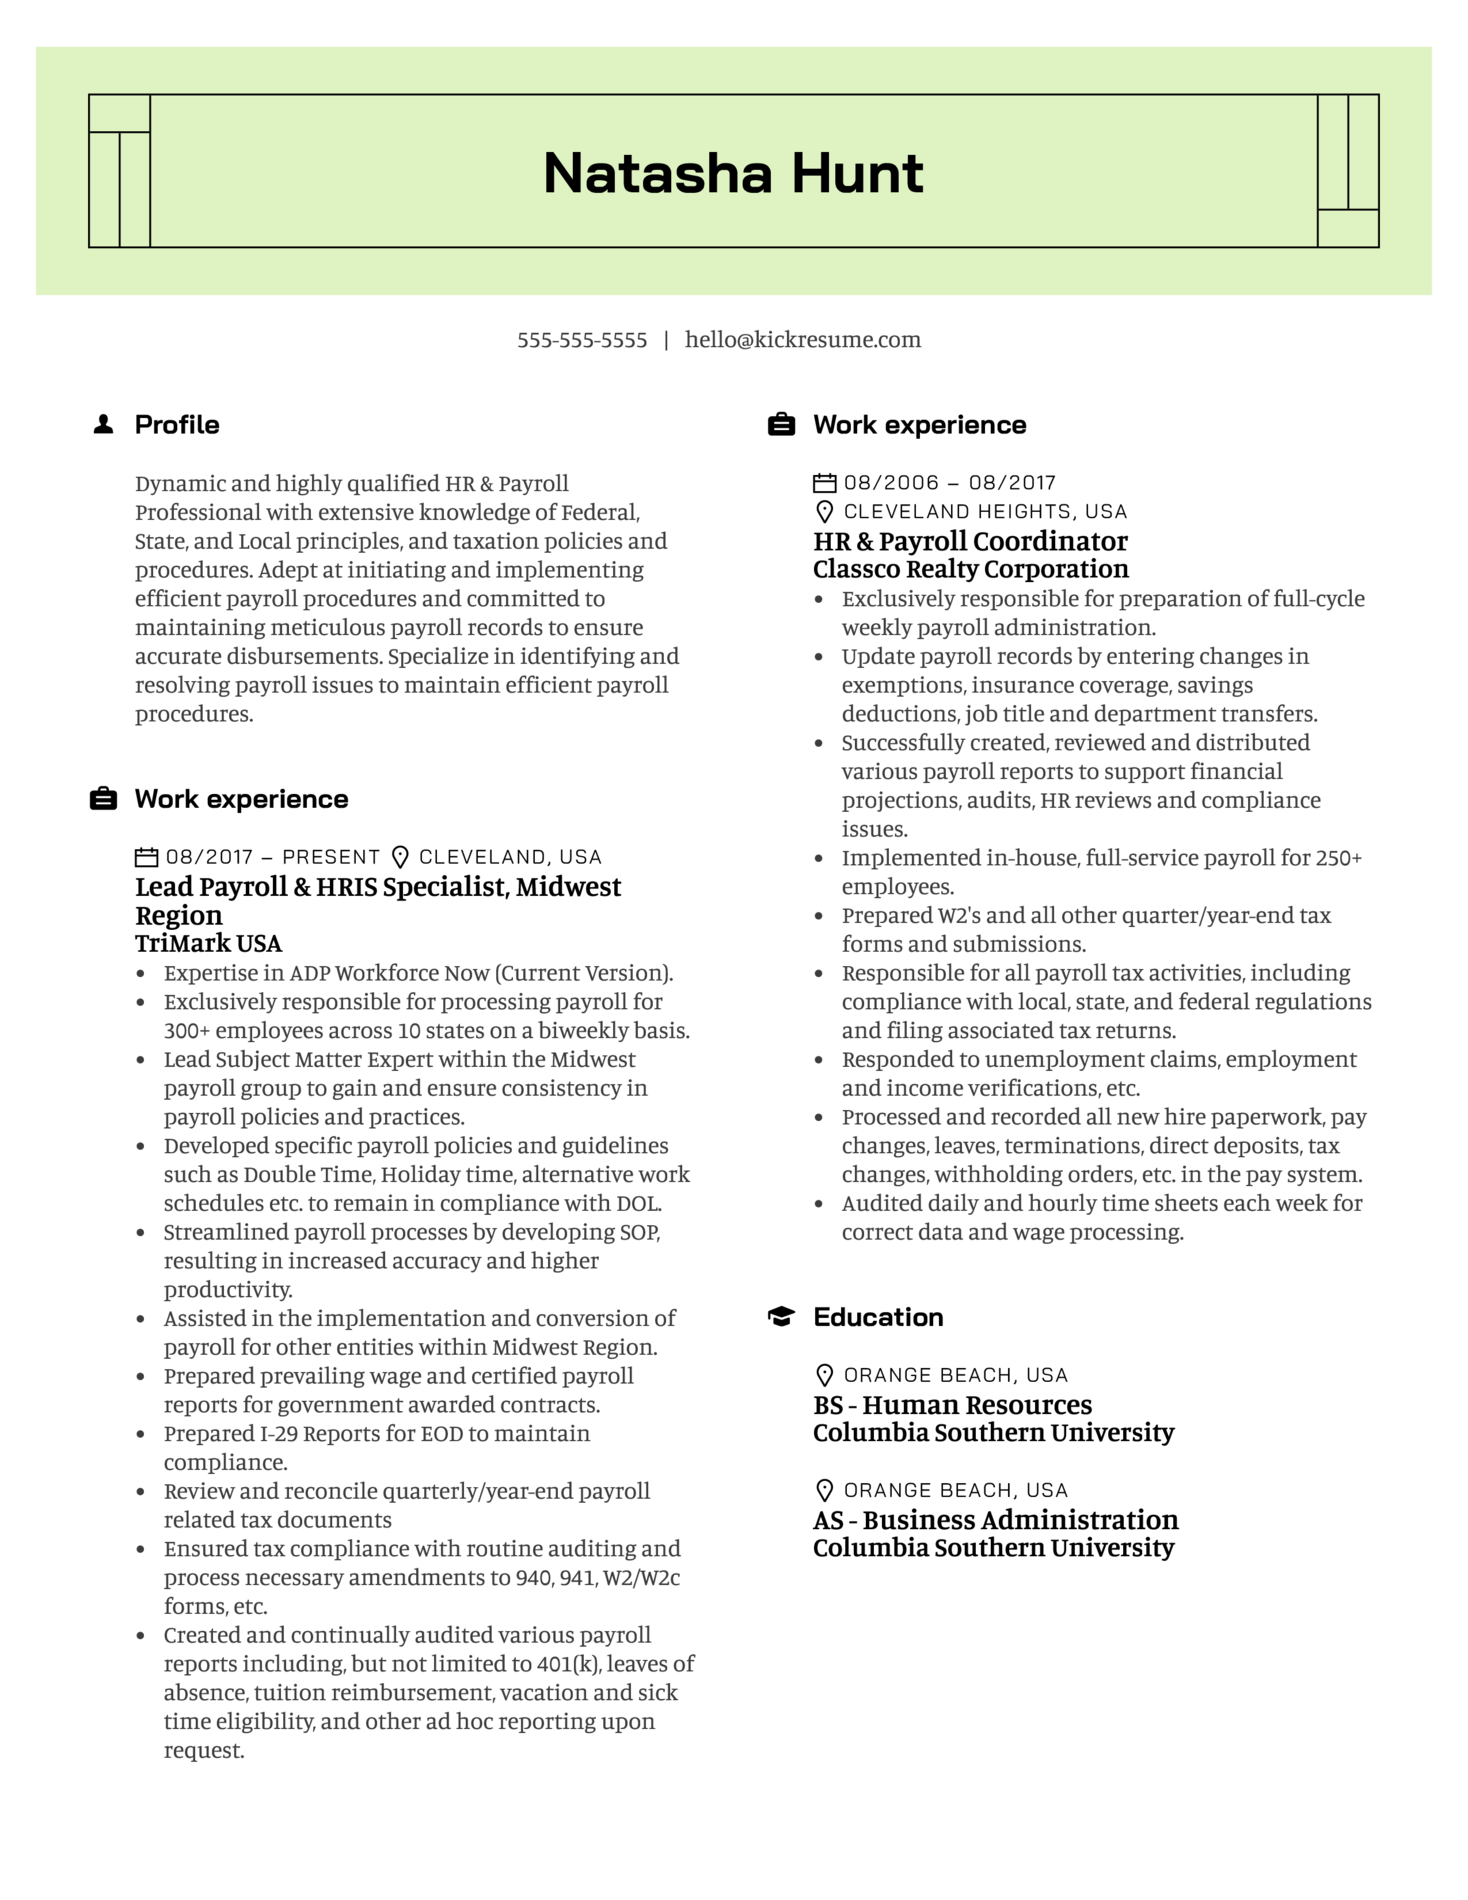 TriMark Payroll Lead Resume Example (parte 1)